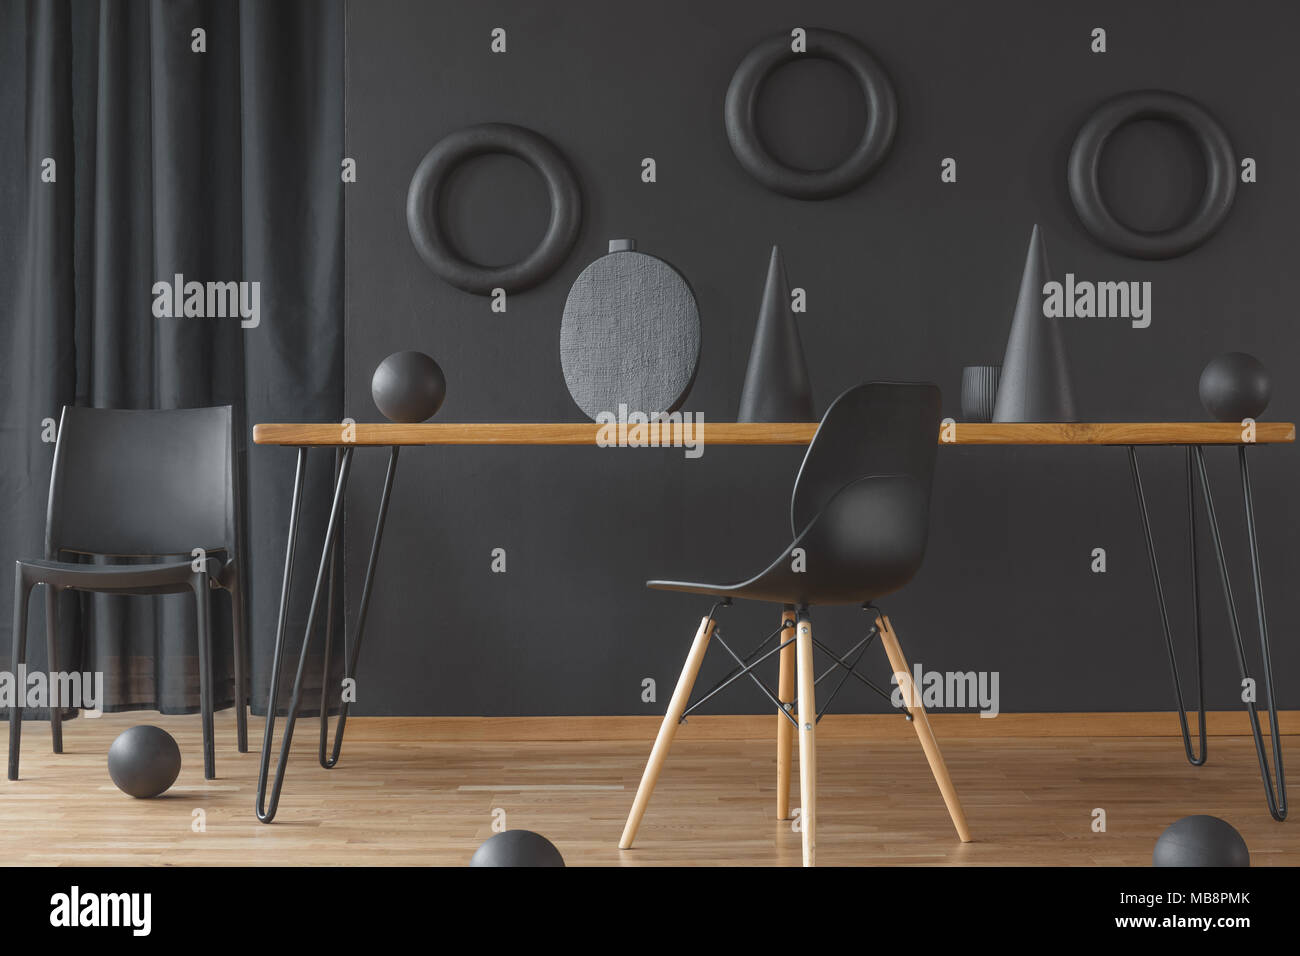 Black and wood dining room interior with hairpin table, two chairs and handmade sculptures - Stock Image